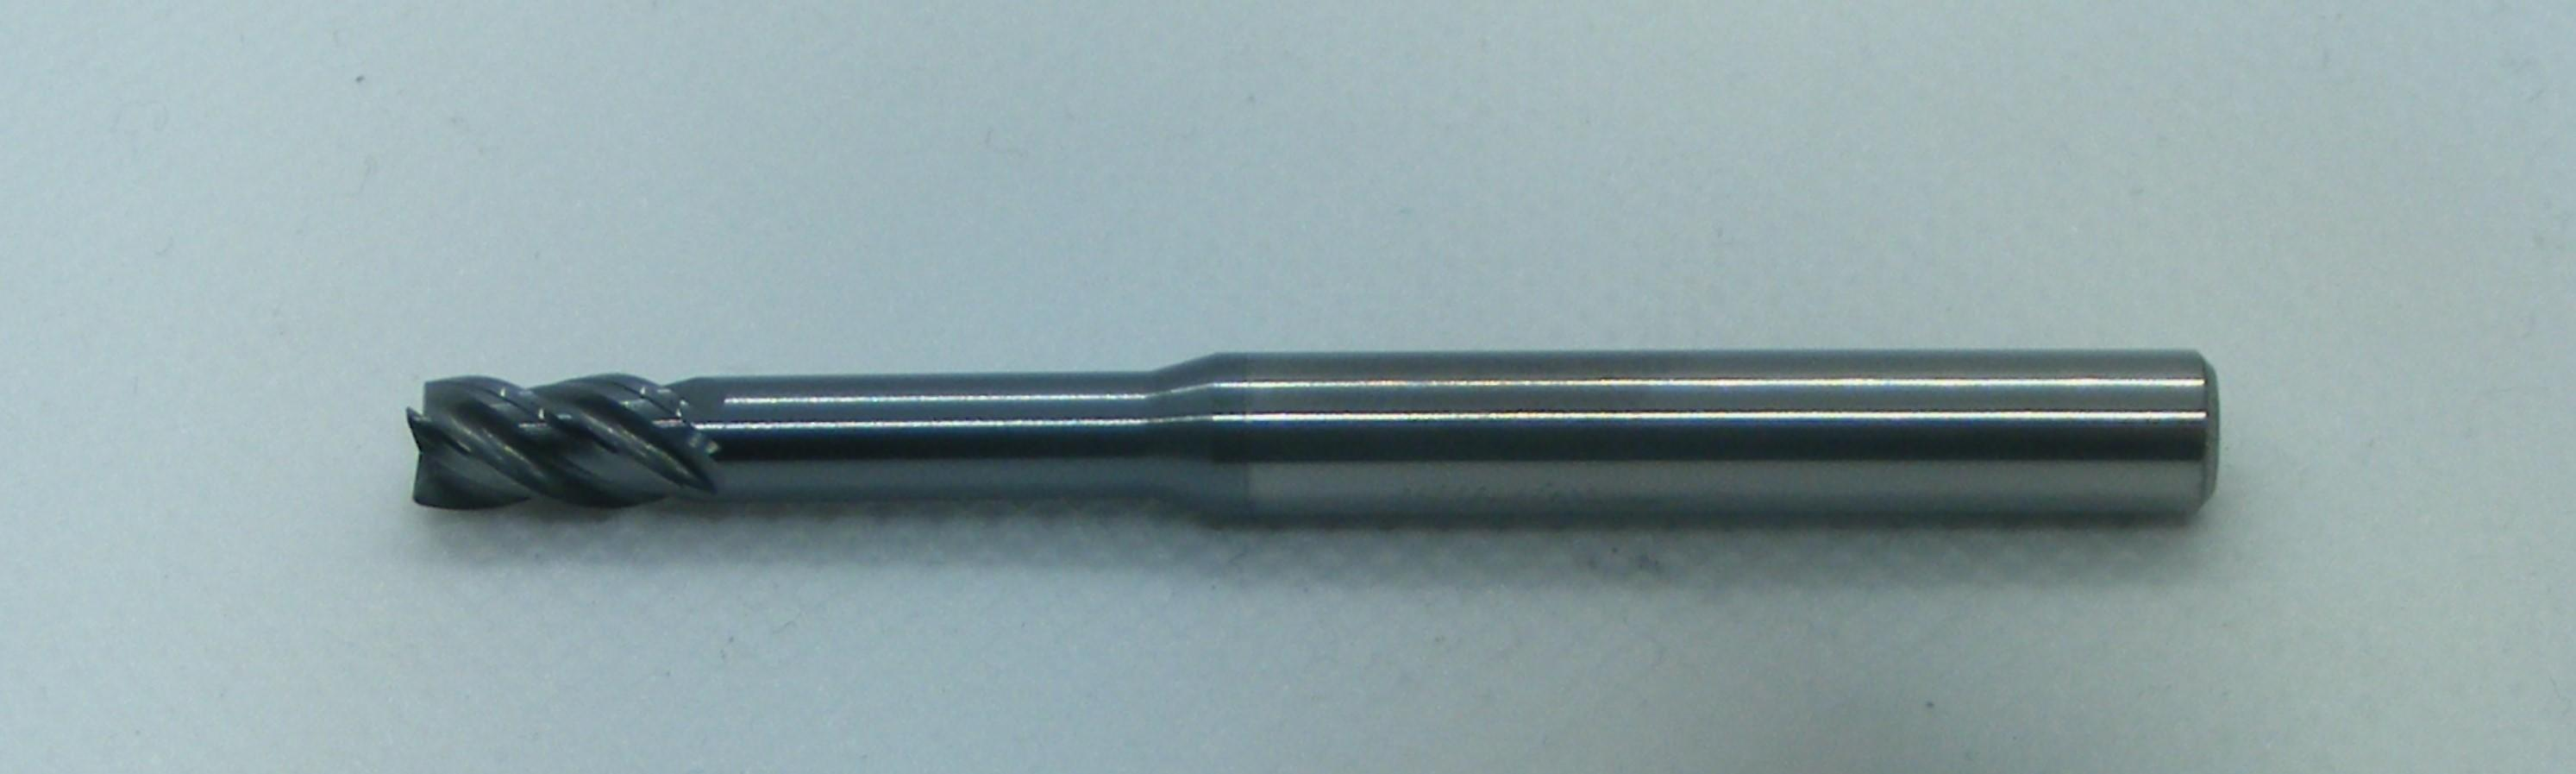 Extended Necked End Mill